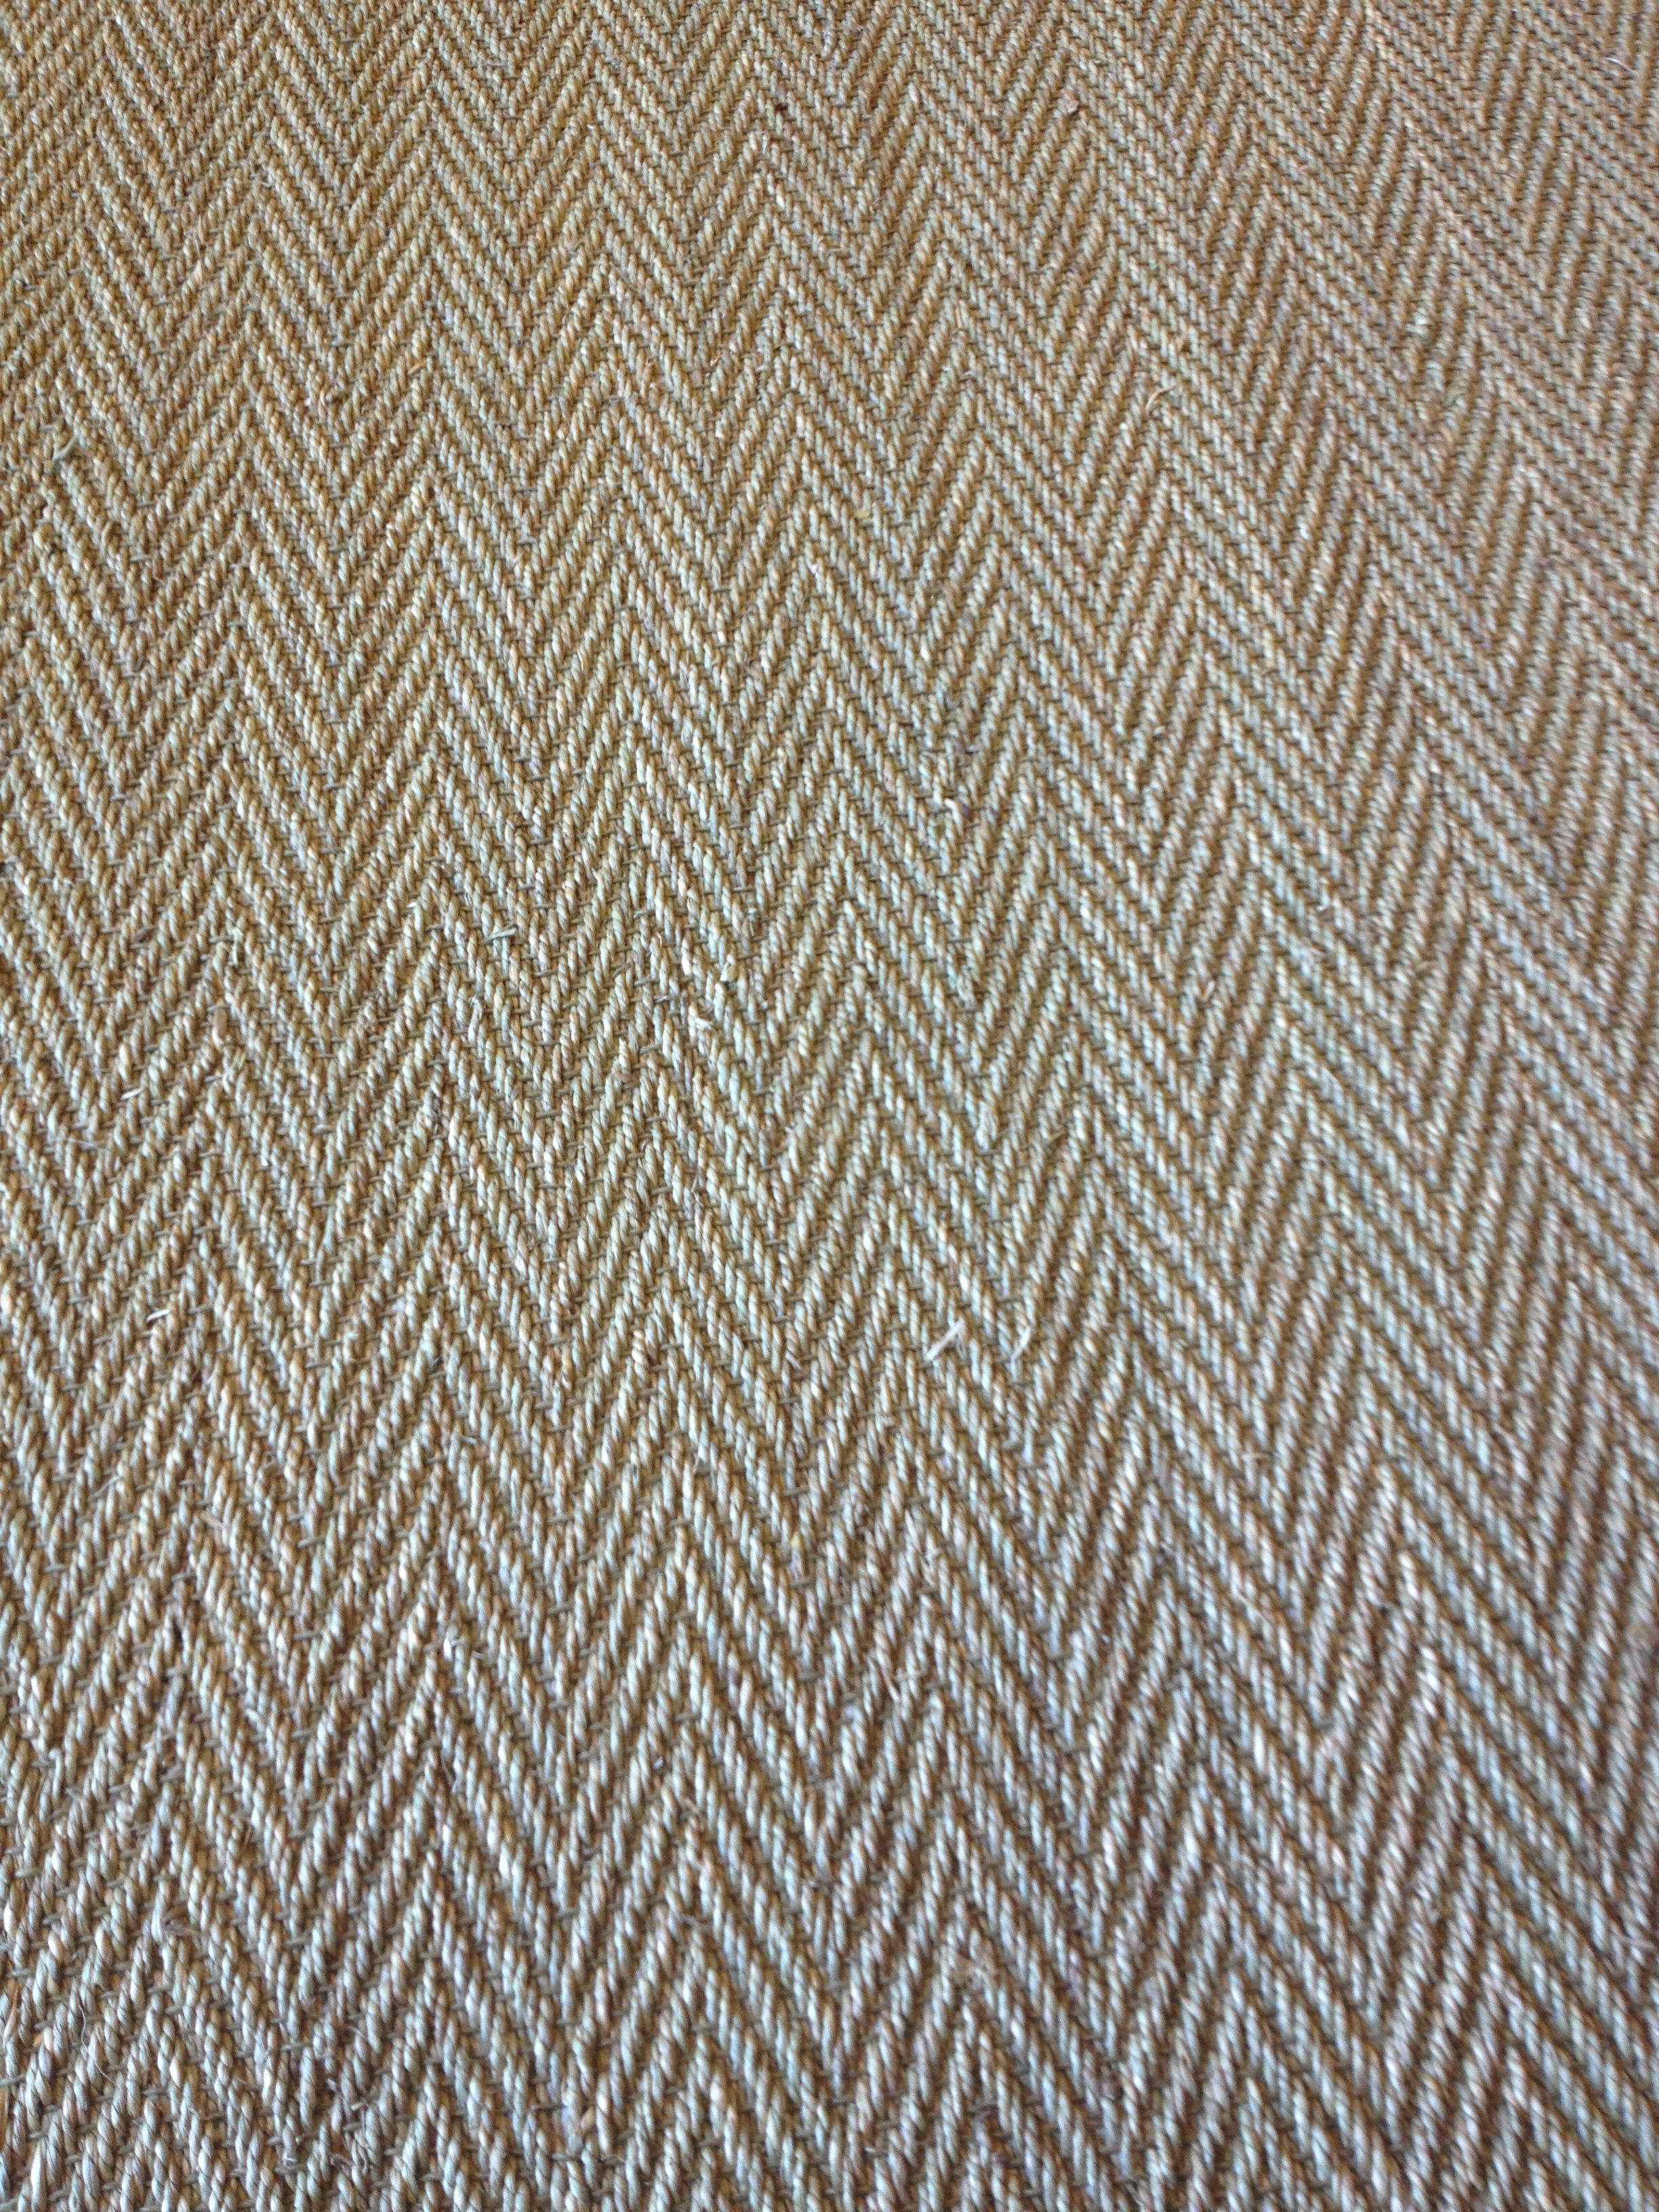 An Updated Seagrass Featuring A Traditional Herringbone